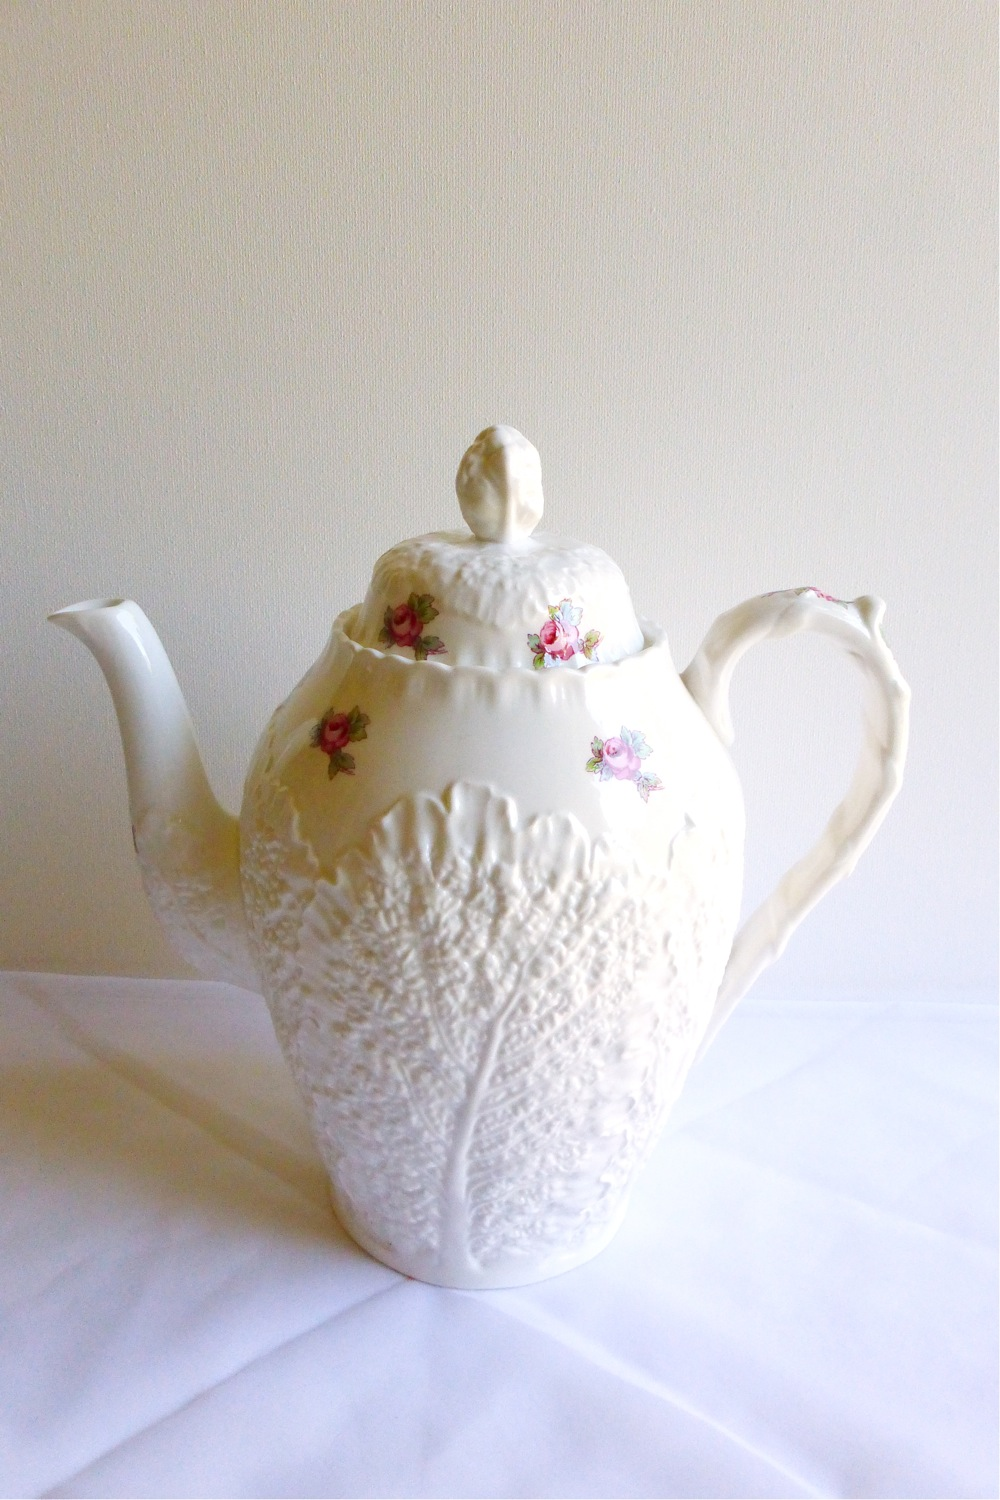 Spode Bridal Rose coffeepot, Spode bone china coffeepot, Spode coffeepot, vintage bridal gift, gift for bride, Vintage Tea Treasures on Etsy, Etsy shop Vintage Tea Treasures, vintage tea ware, vintage gifts, English bone china, vintage English tea ware, Etsy shop update